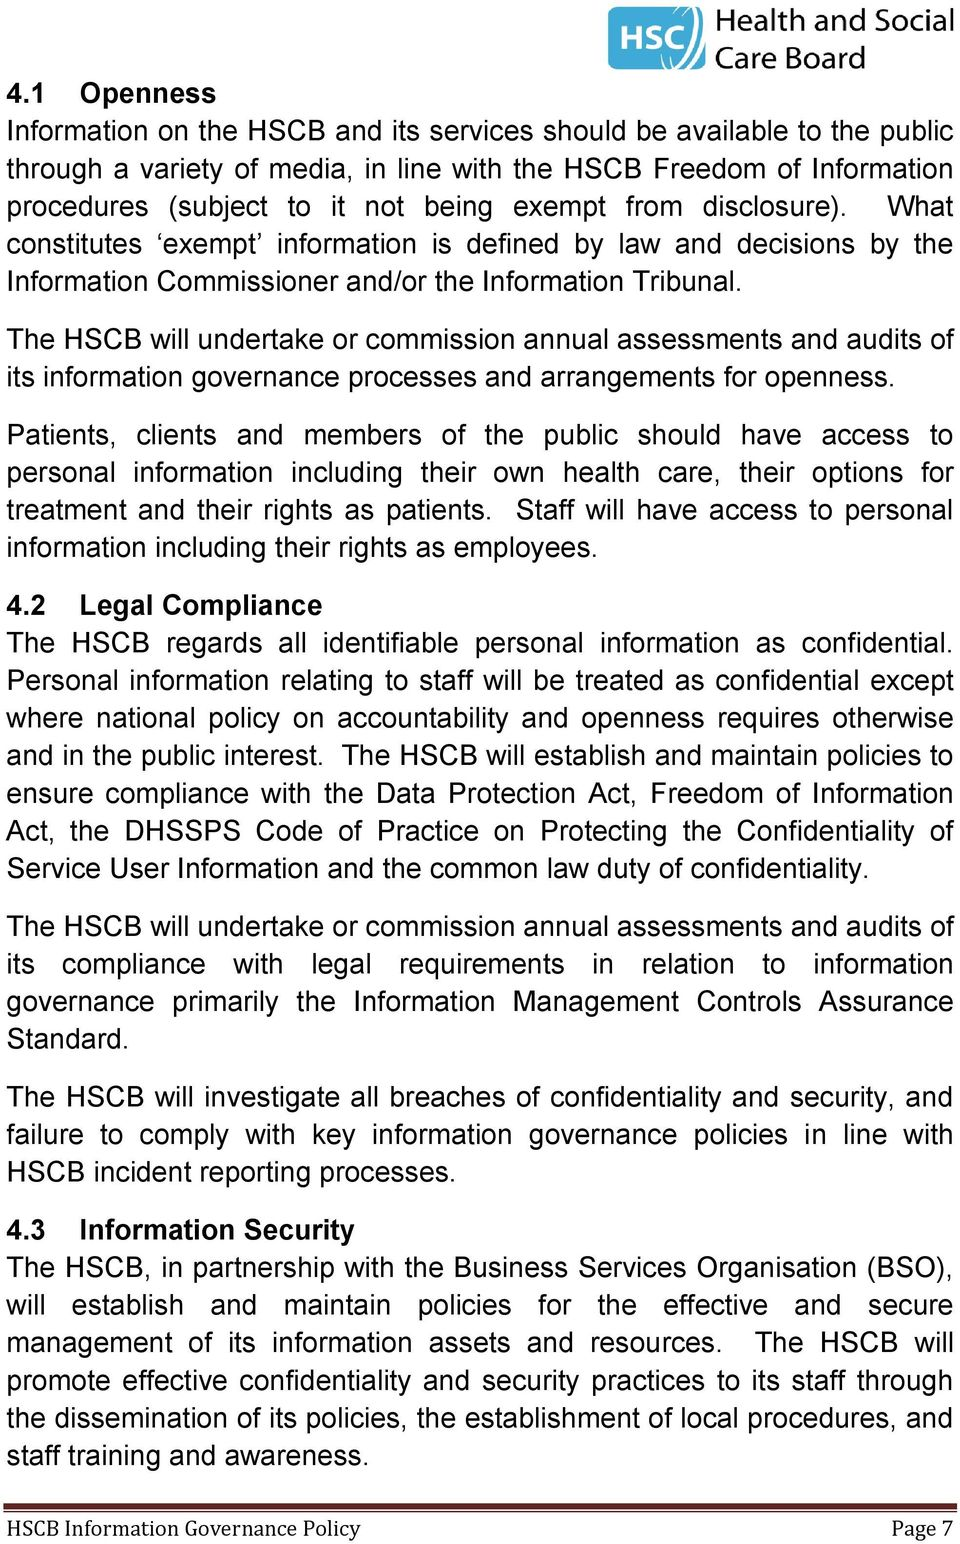 The HSCB will undertake or commission annual assessments and audits of its information governance processes and arrangements for openness.